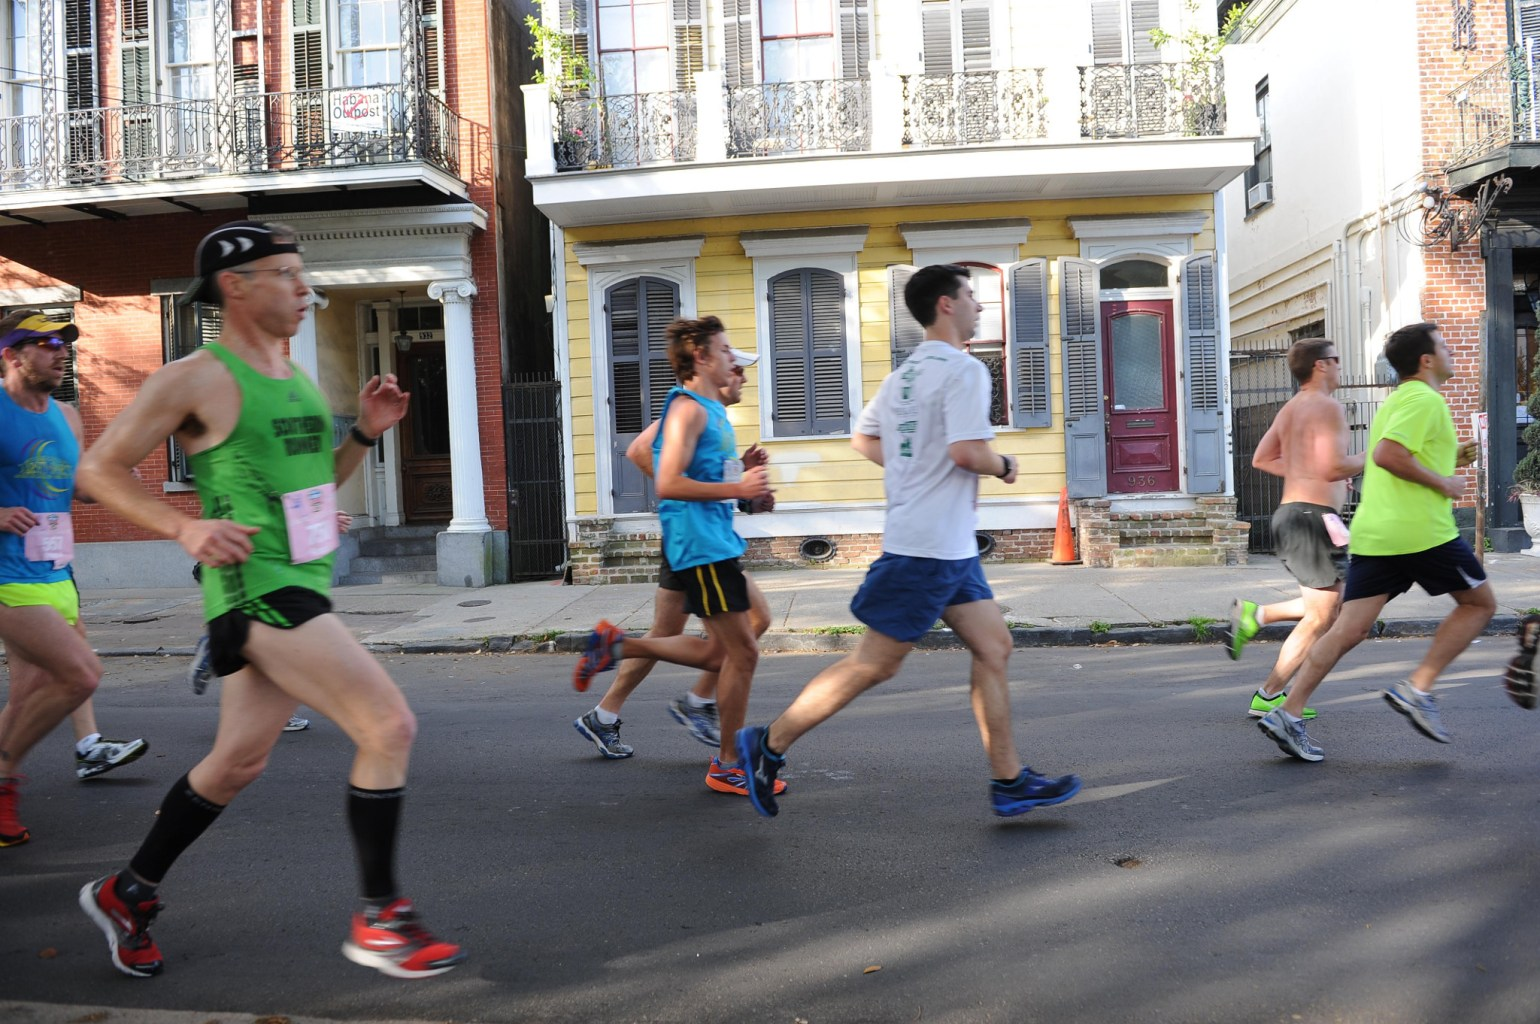 The Crescent City Classic is New Orleans' premier 10k road race, and one of the oldest 10k races in the nation. (Photo: Cheryl Gerber)